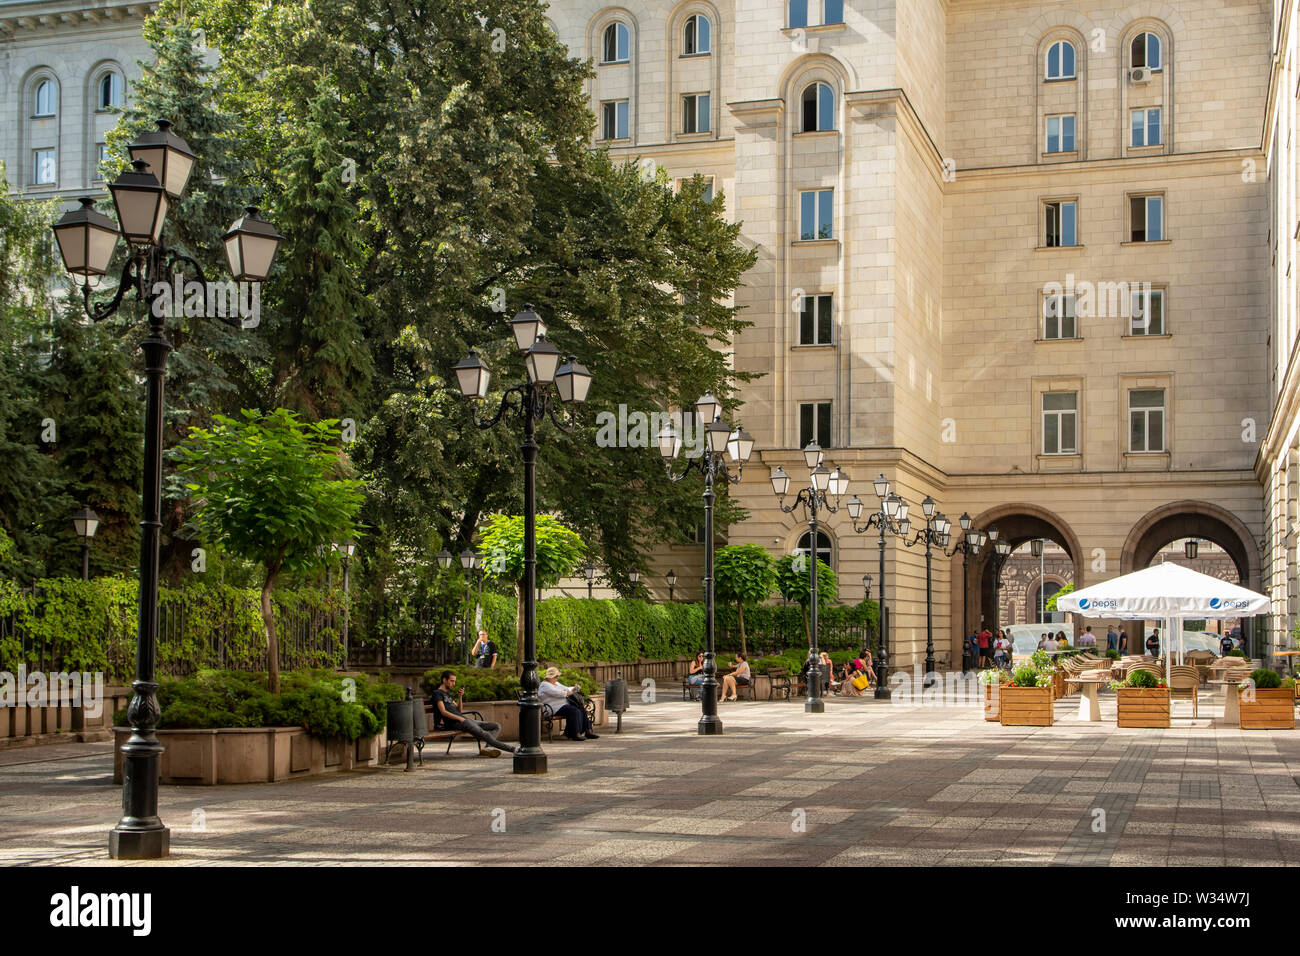 Courtyard in President's Building, Sofia, Bulgaria - Stock Image